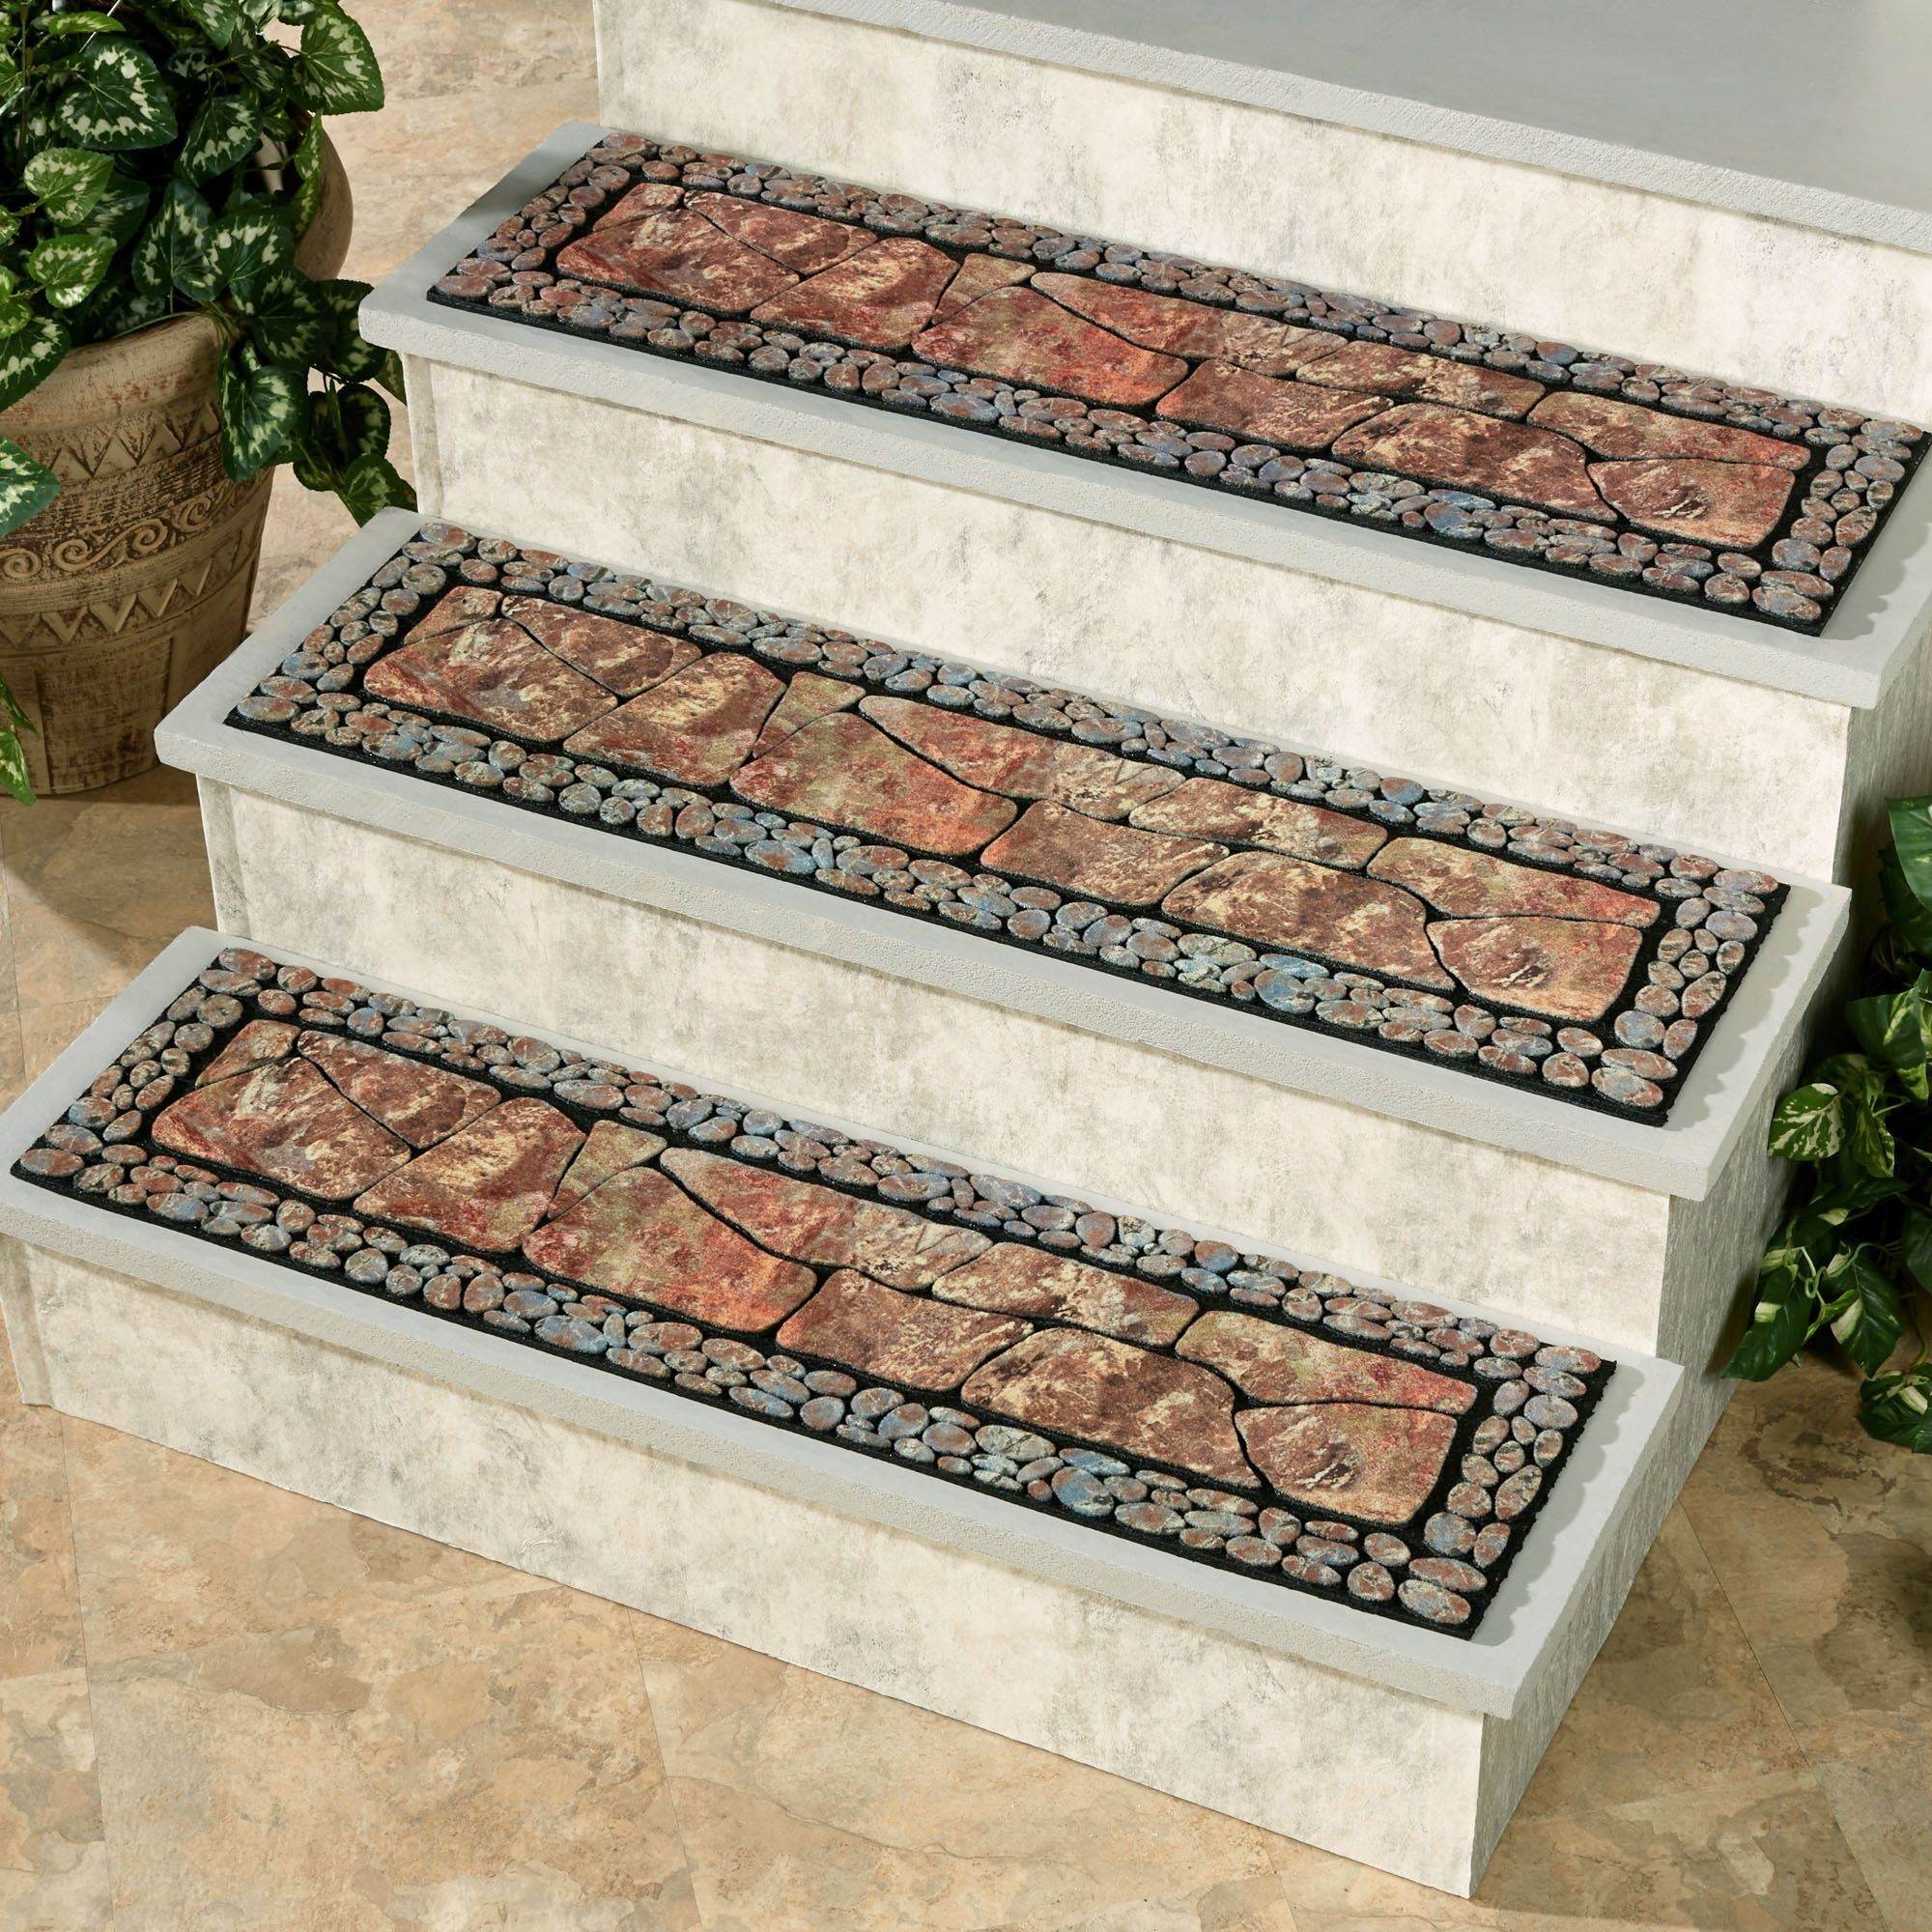 Outdoor Doormats And Stair Treads Touch Of Class Intended For Decorative Stair Treads (Image 8 of 15)